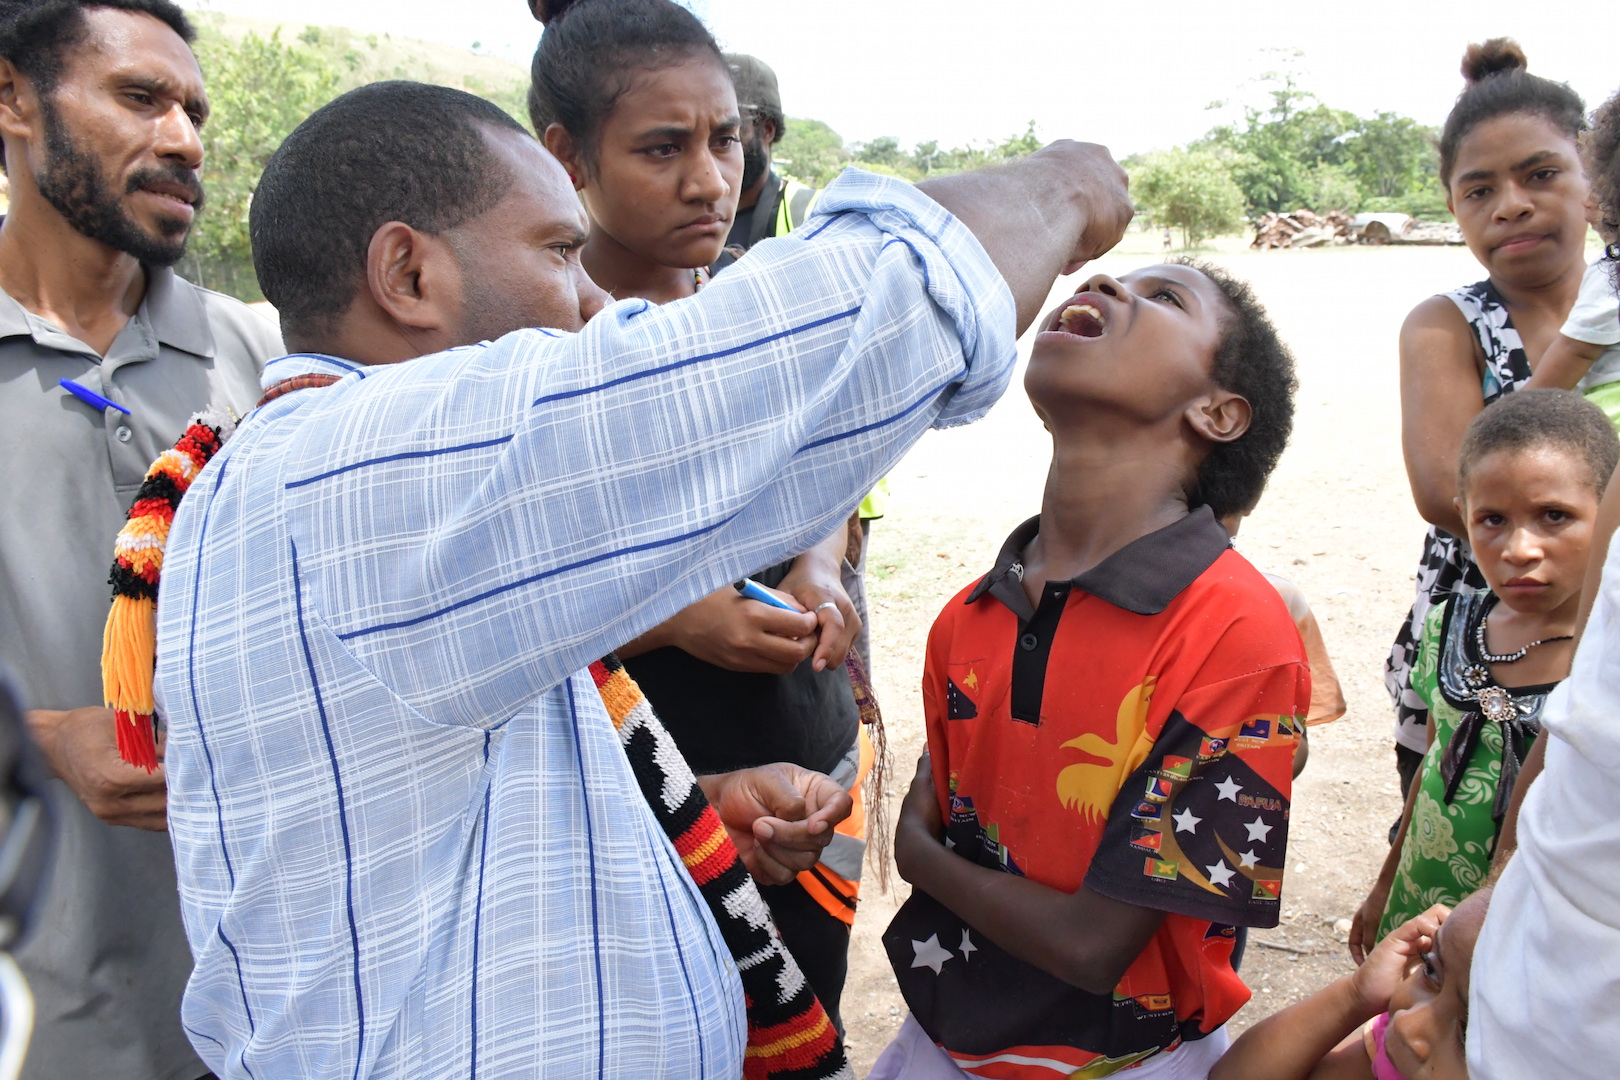 Hopes polio emergency may deliver a silver lining for health in PNG